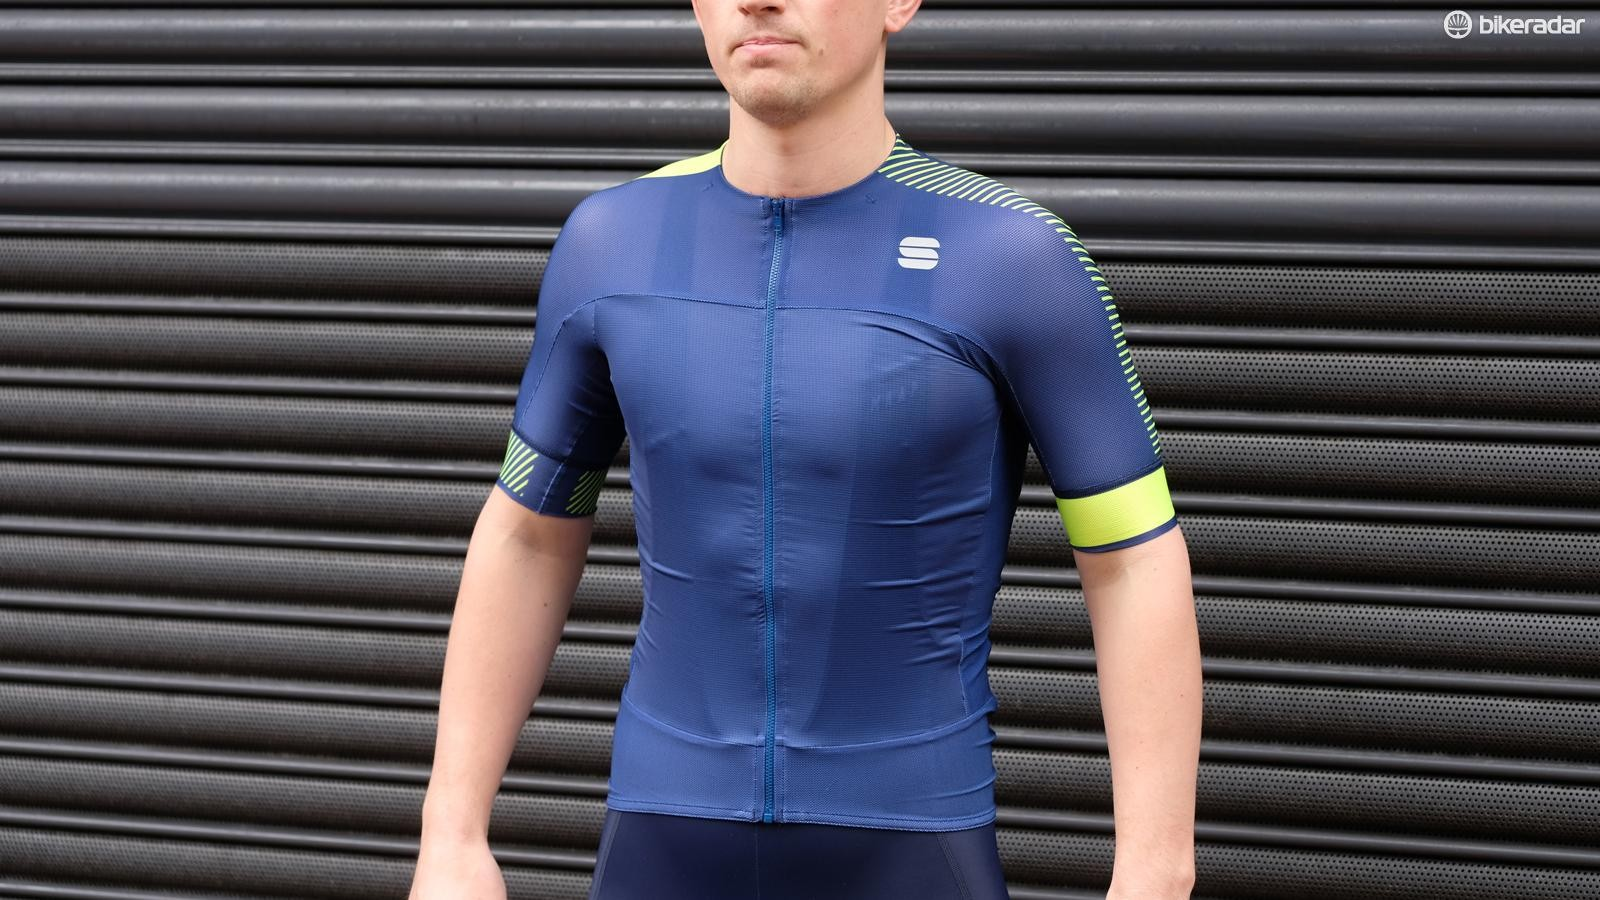 The Bodyfit Pro Evo jersey features plenty of pro features including longer sleeves and a very low collar